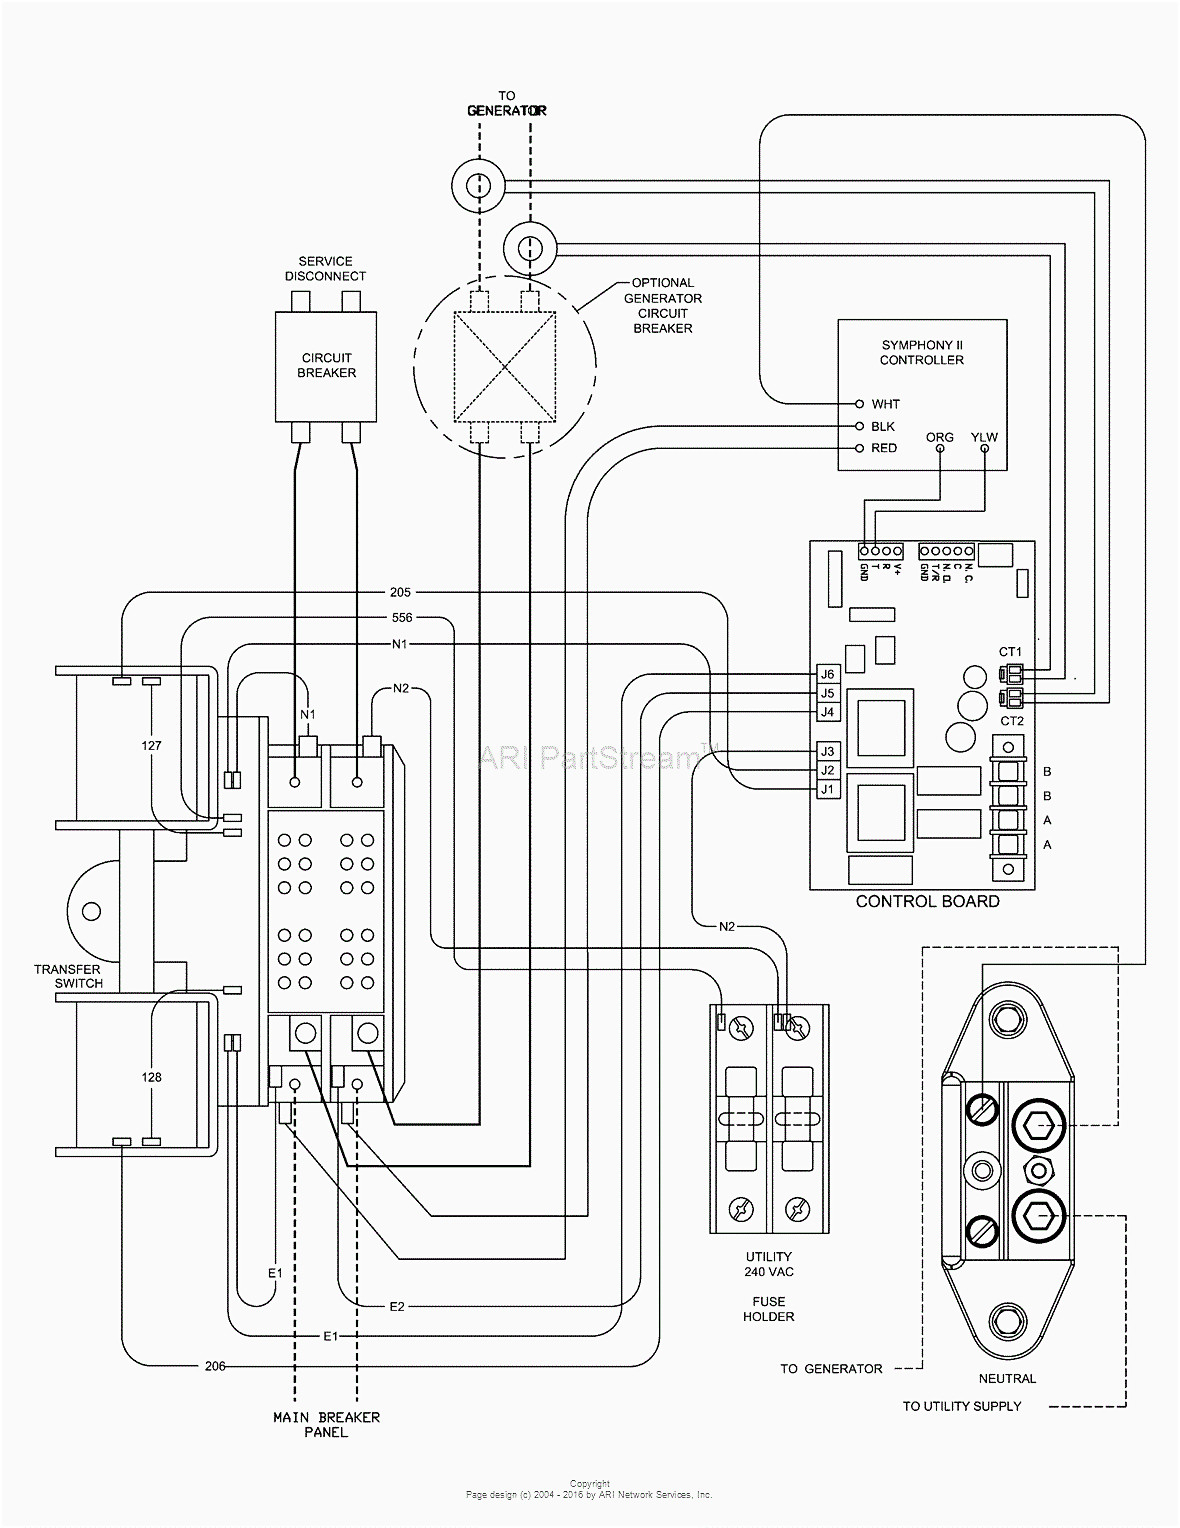 generac generator transfer switch wiring diagram Collection-Generator Automatic Transfer Switch Wiring Diagram Generac With Fancy Briggs And 16-h